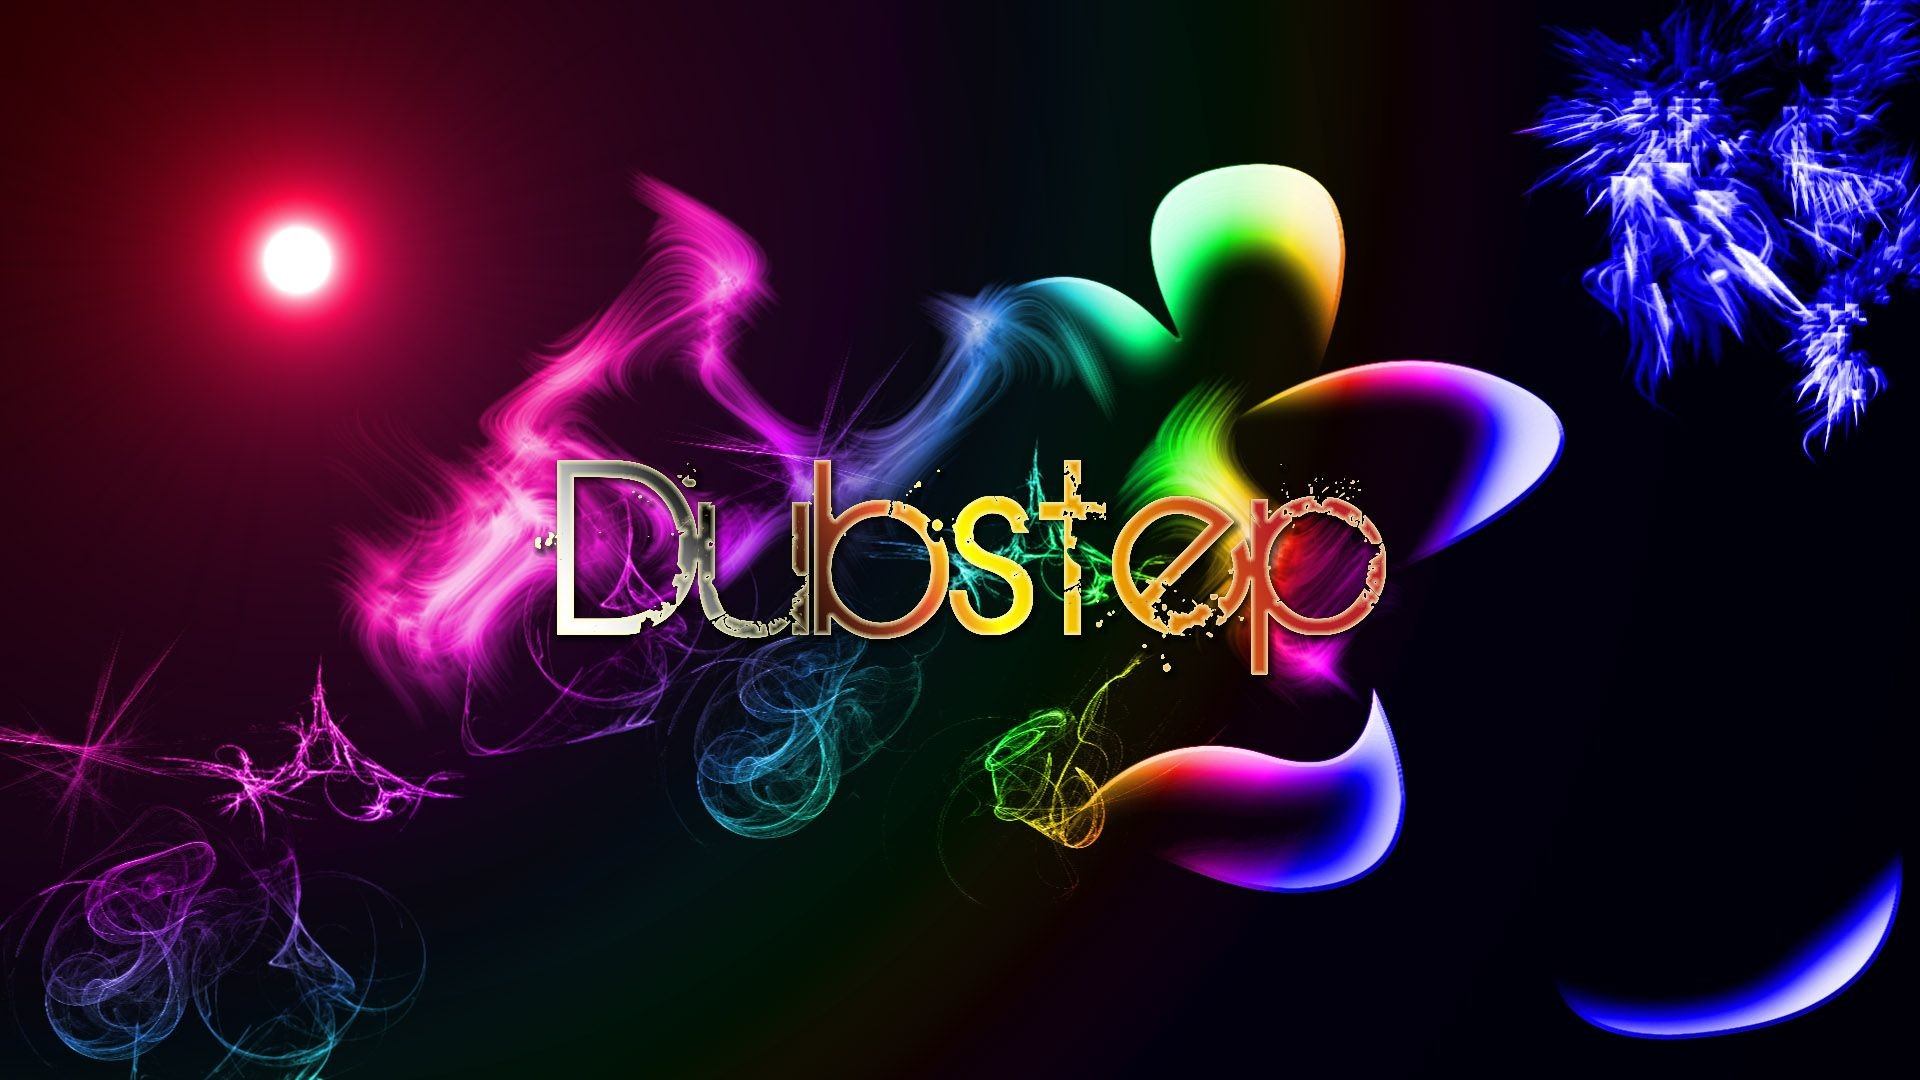 Beautiful Wallpaper Music Infection - 527434  Collection_462467.jpg